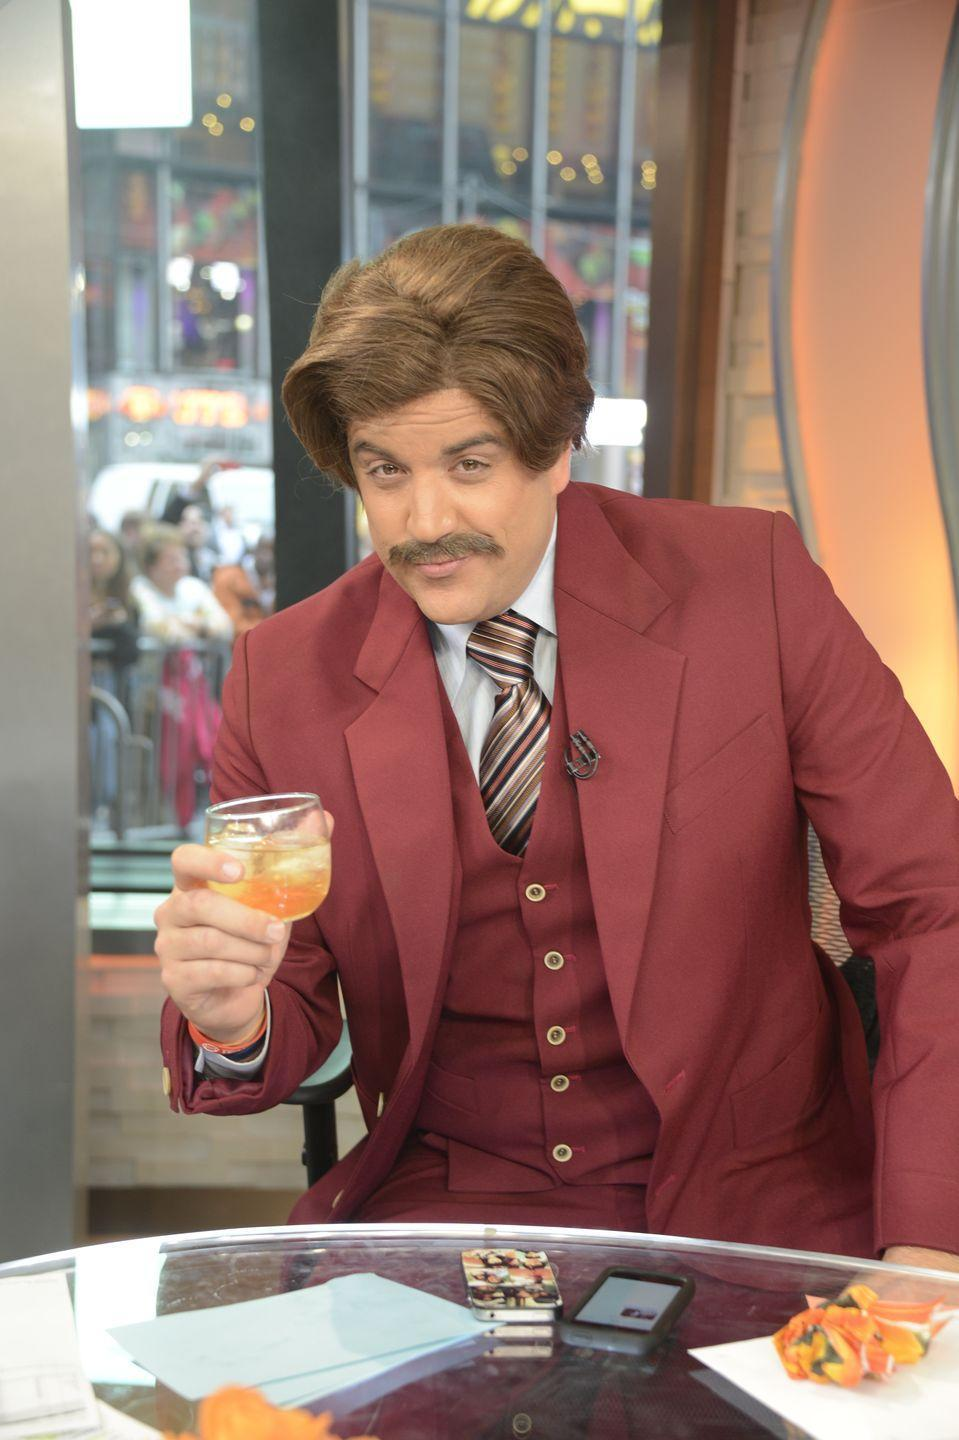 """<p>Stay classy and pour yourself a glass of scotch to elevate this classic <em>Anchorman</em> costume to the next level. To recreate, simply pick out your finest burgundy suit, groom your 'stache, and give your hair some volume. </p><p><a class=""""link rapid-noclick-resp"""" href=""""https://www.amazon.com/MyPartyShirt-Ron-Burgundy-70s-Mustache/dp/B016CHHL0Q/?tag=syn-yahoo-20&ascsubtag=%5Bartid%7C10055.g.28089320%5Bsrc%7Cyahoo-us"""" rel=""""nofollow noopener"""" target=""""_blank"""" data-ylk=""""slk:SHOP WIGS"""">SHOP WIGS</a></p>"""